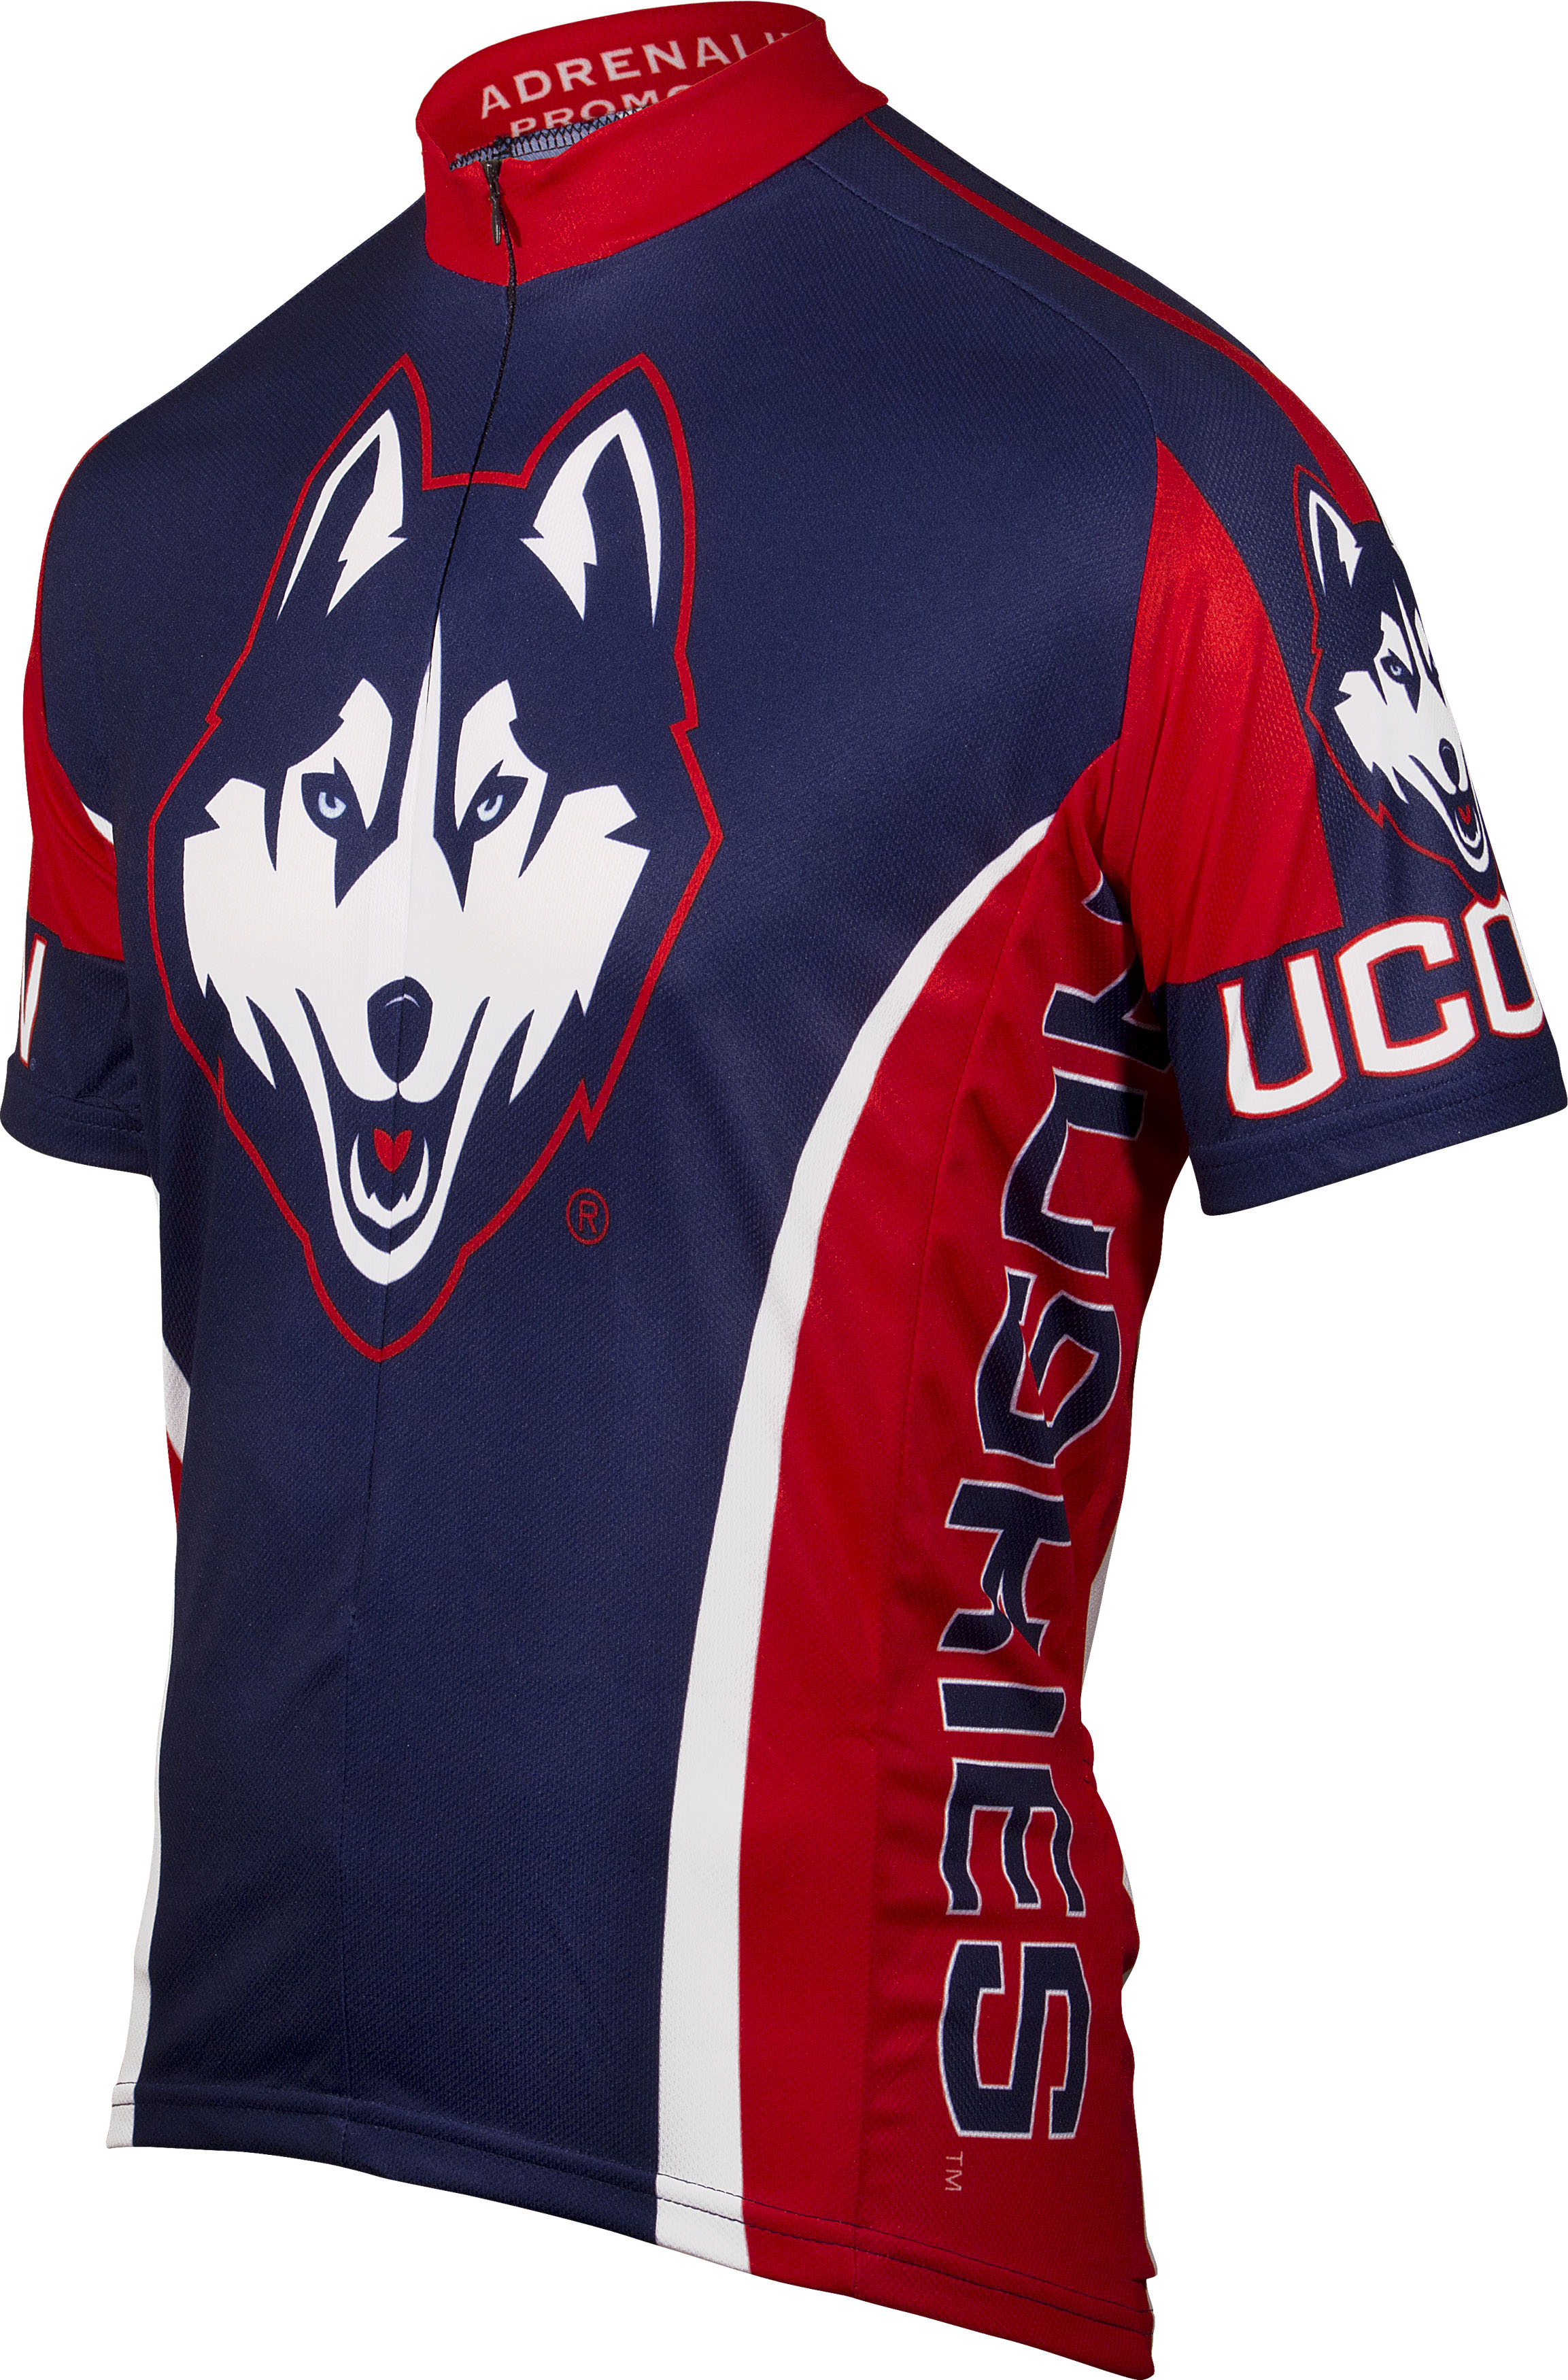 University of Connecticut (UCONN) Cycling Jersey XL